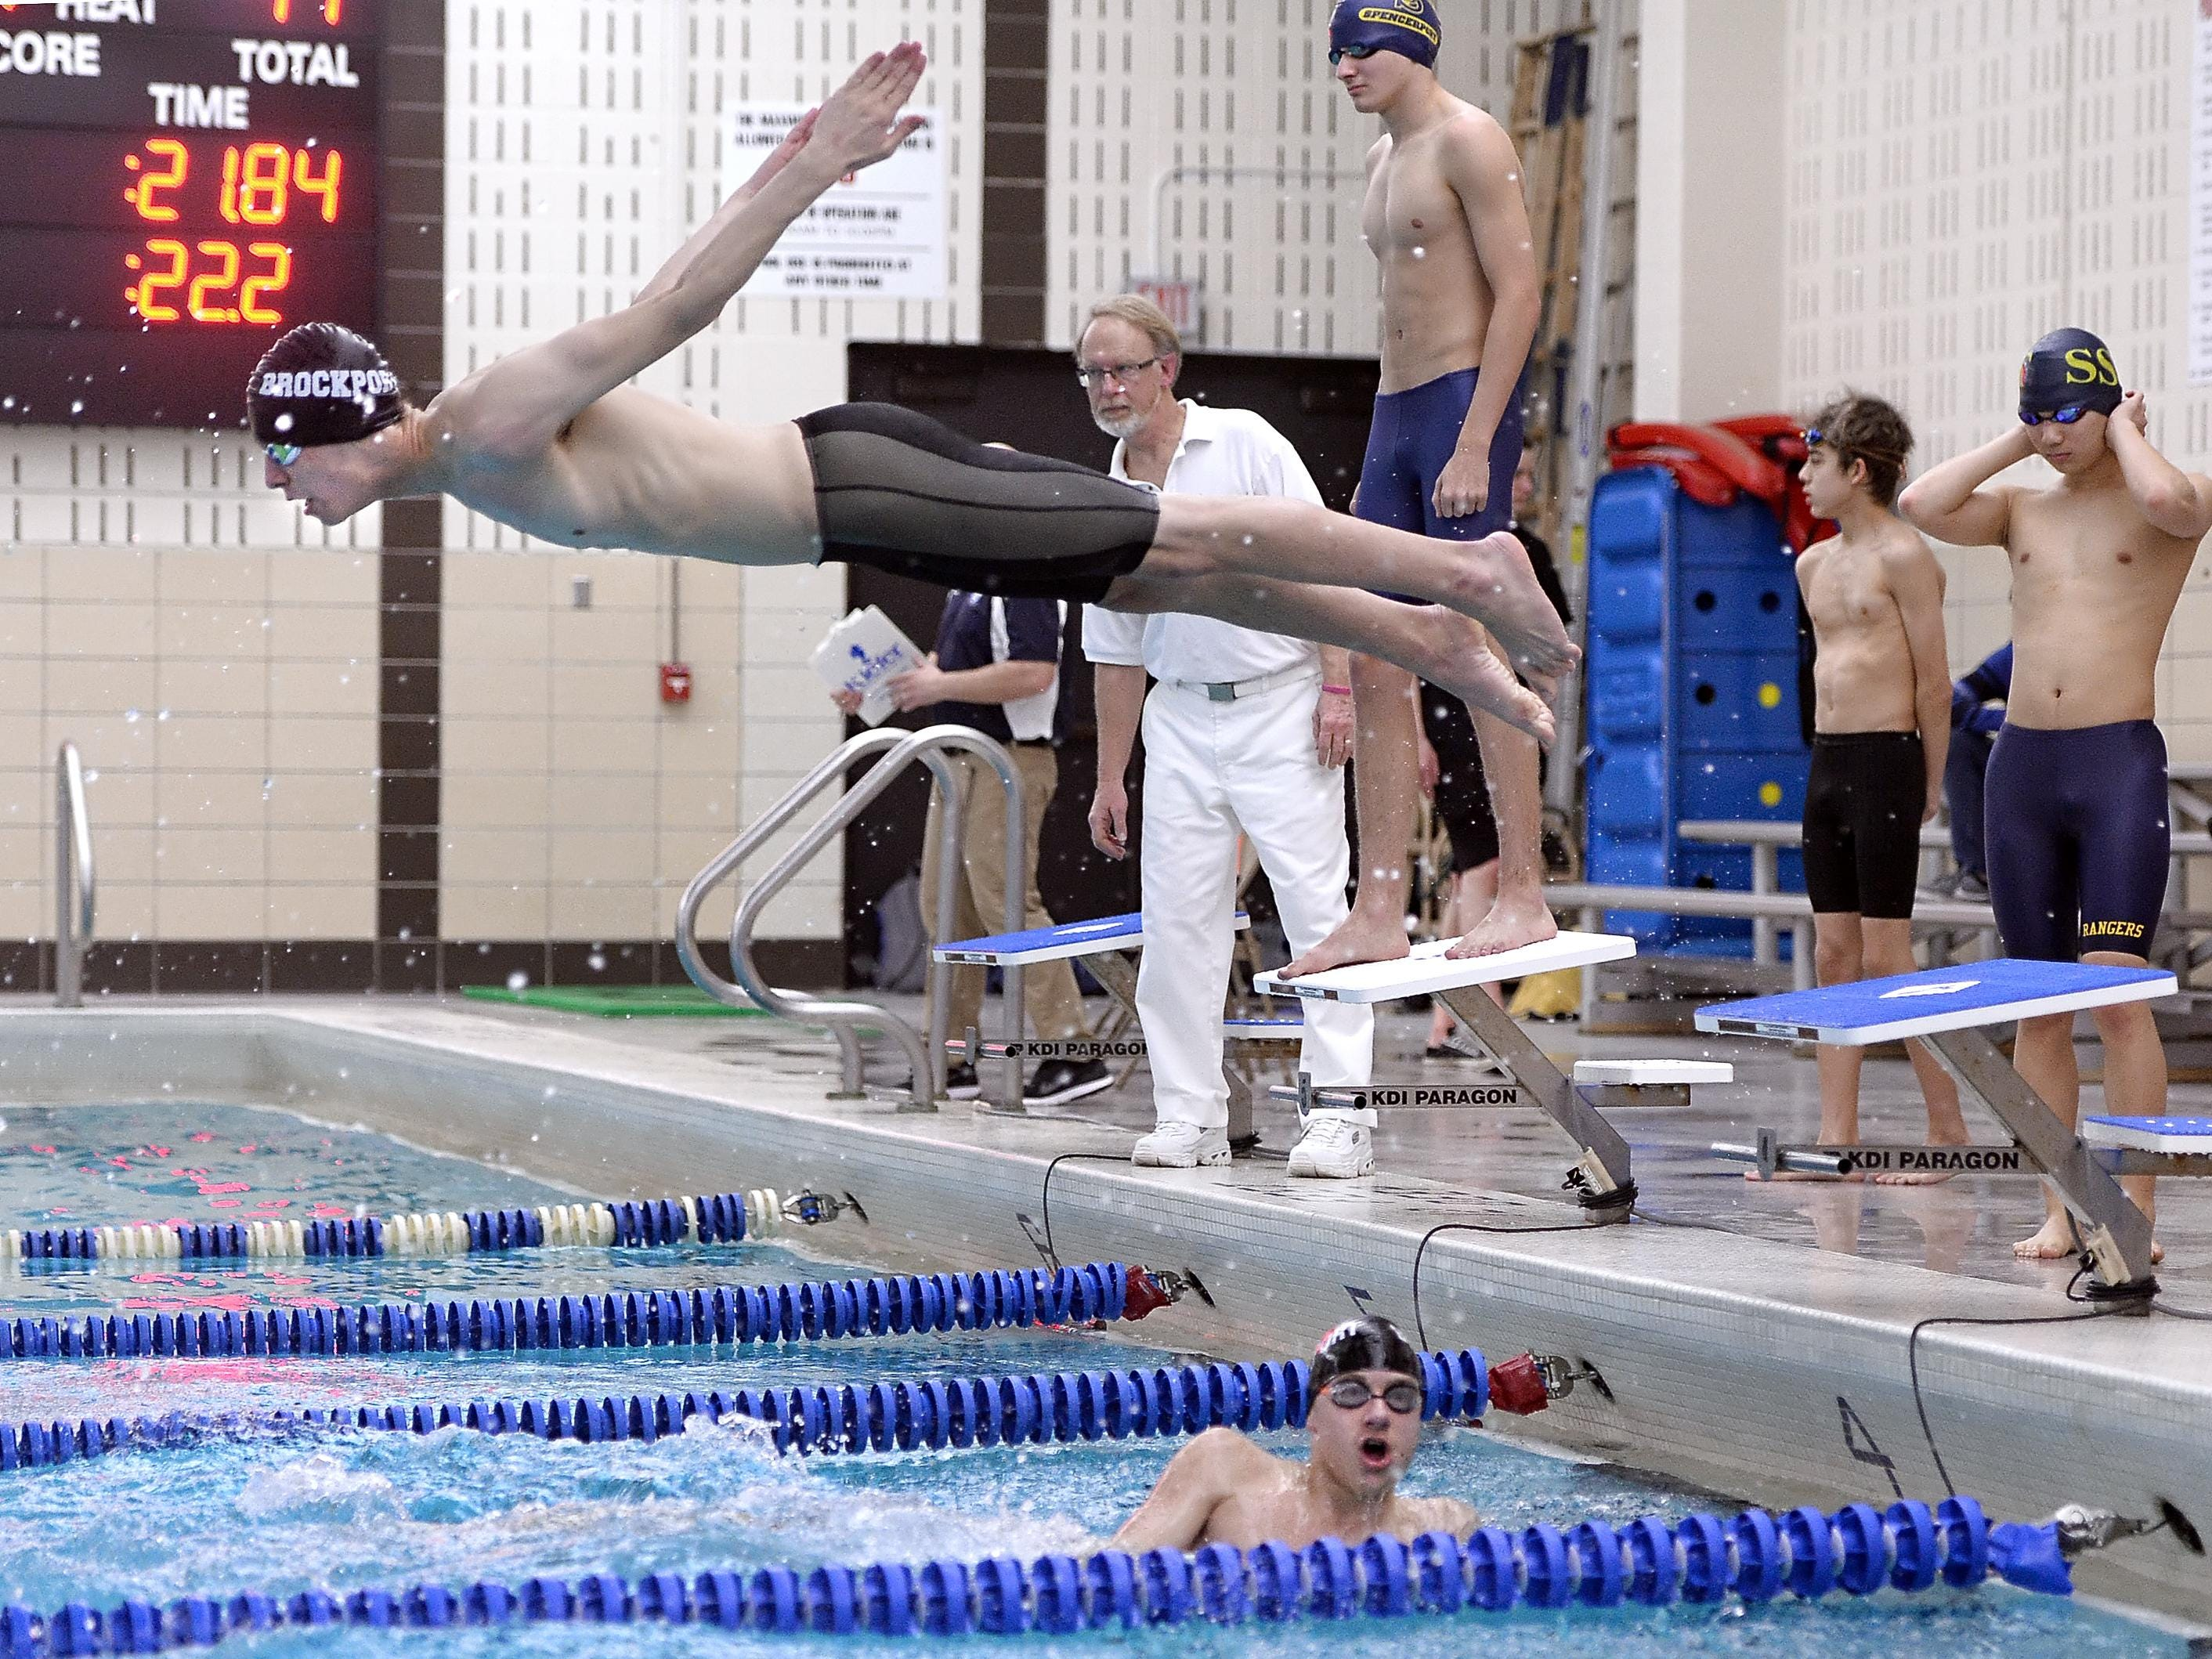 Brockport's Alex Regna, top, leaves the starting block over teammate Brandon Amthor as they compete in the 200-yard freestyle relay.